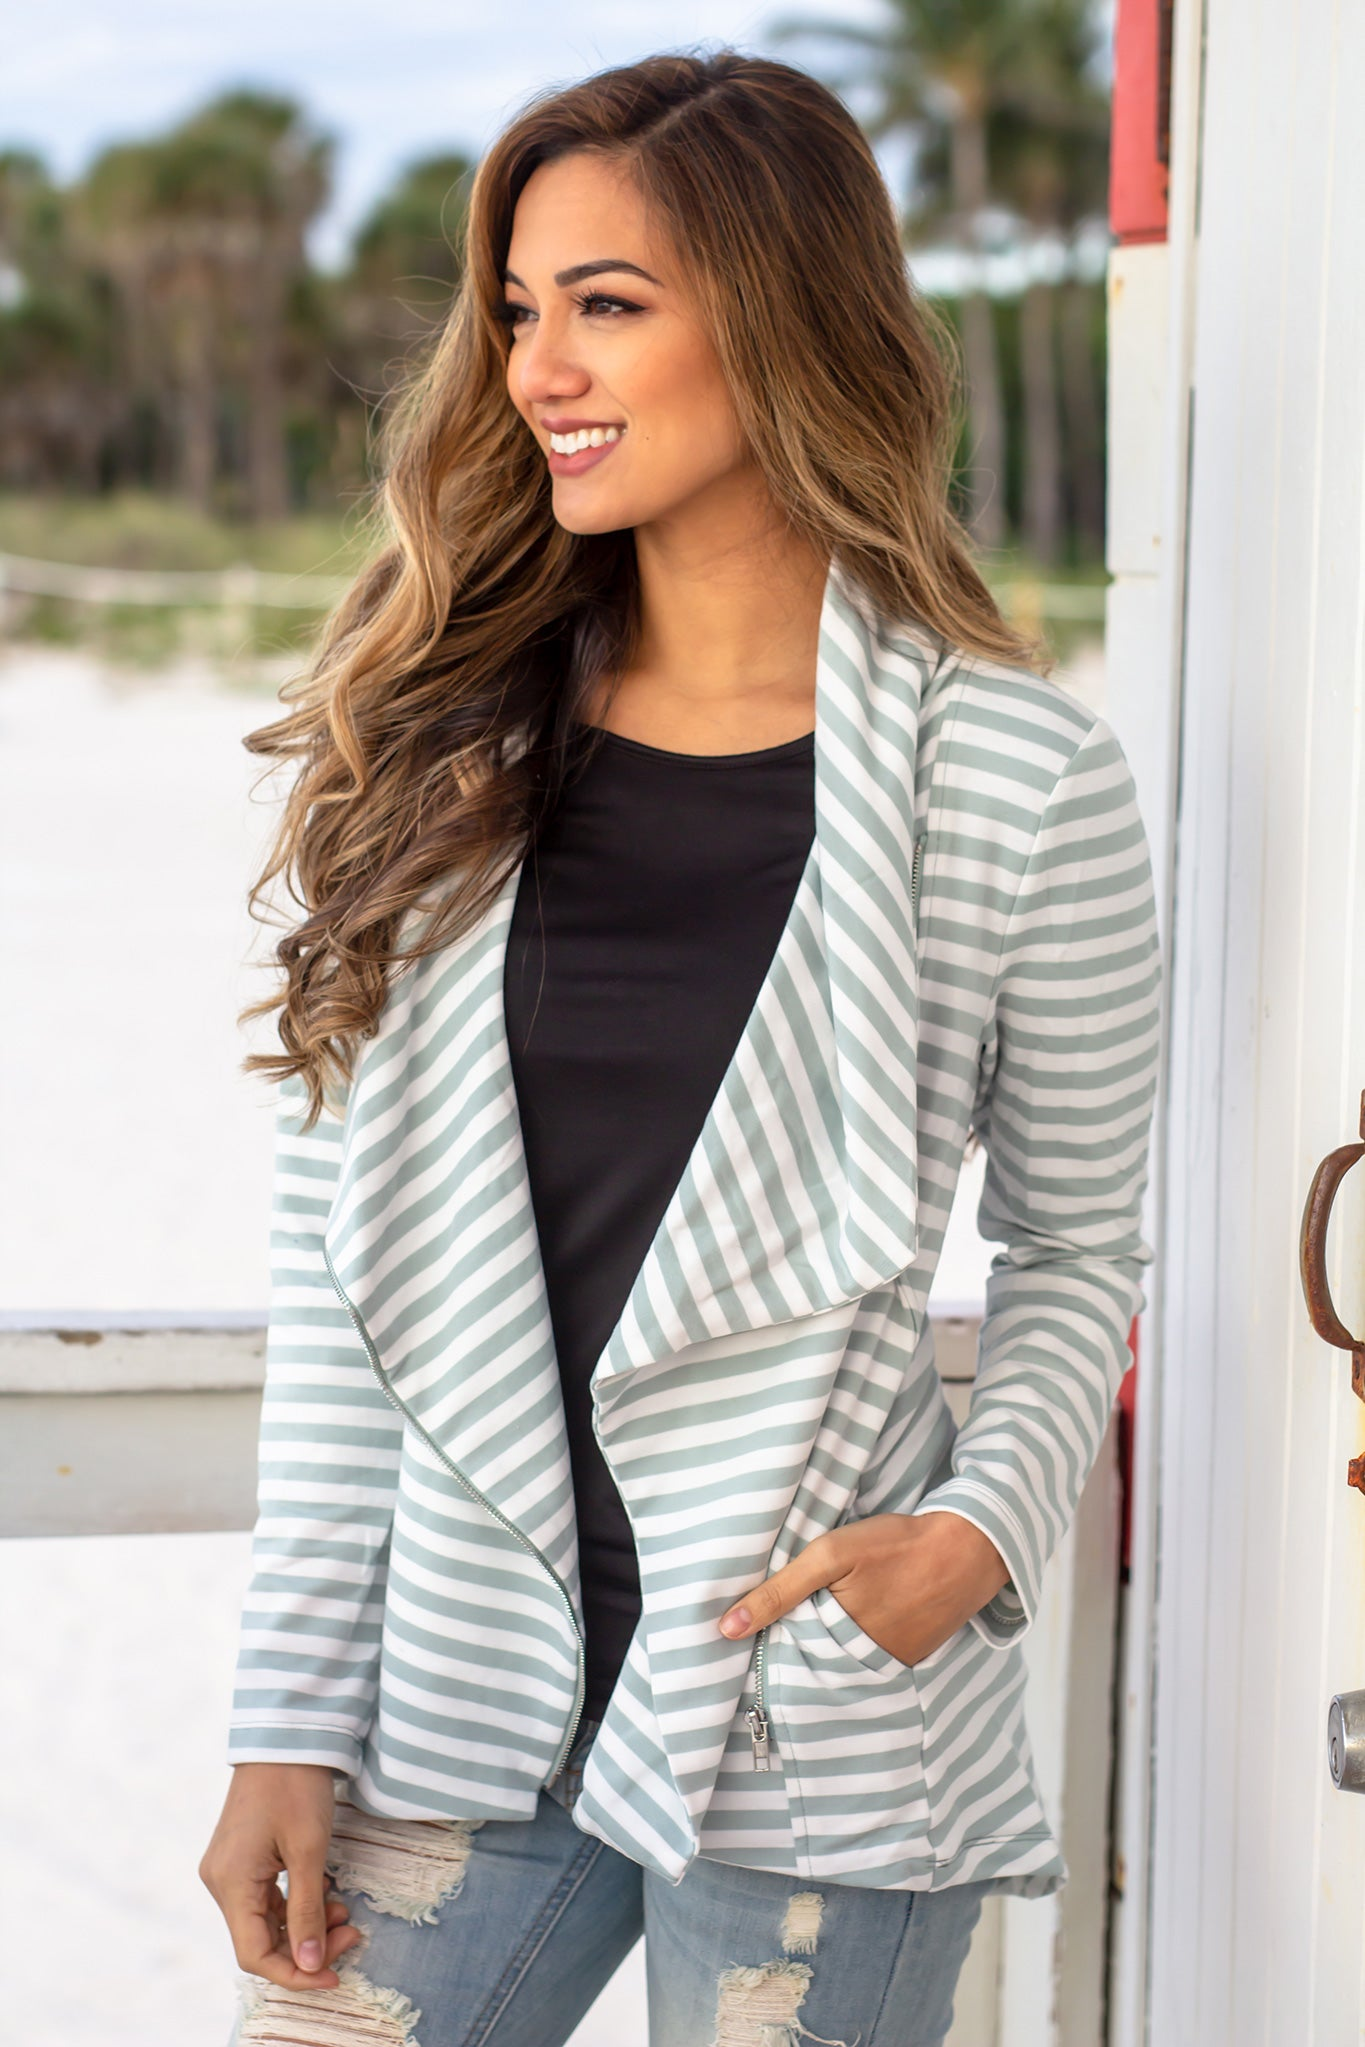 White and Blue Striped Asymmetrical Jacket with Zipper